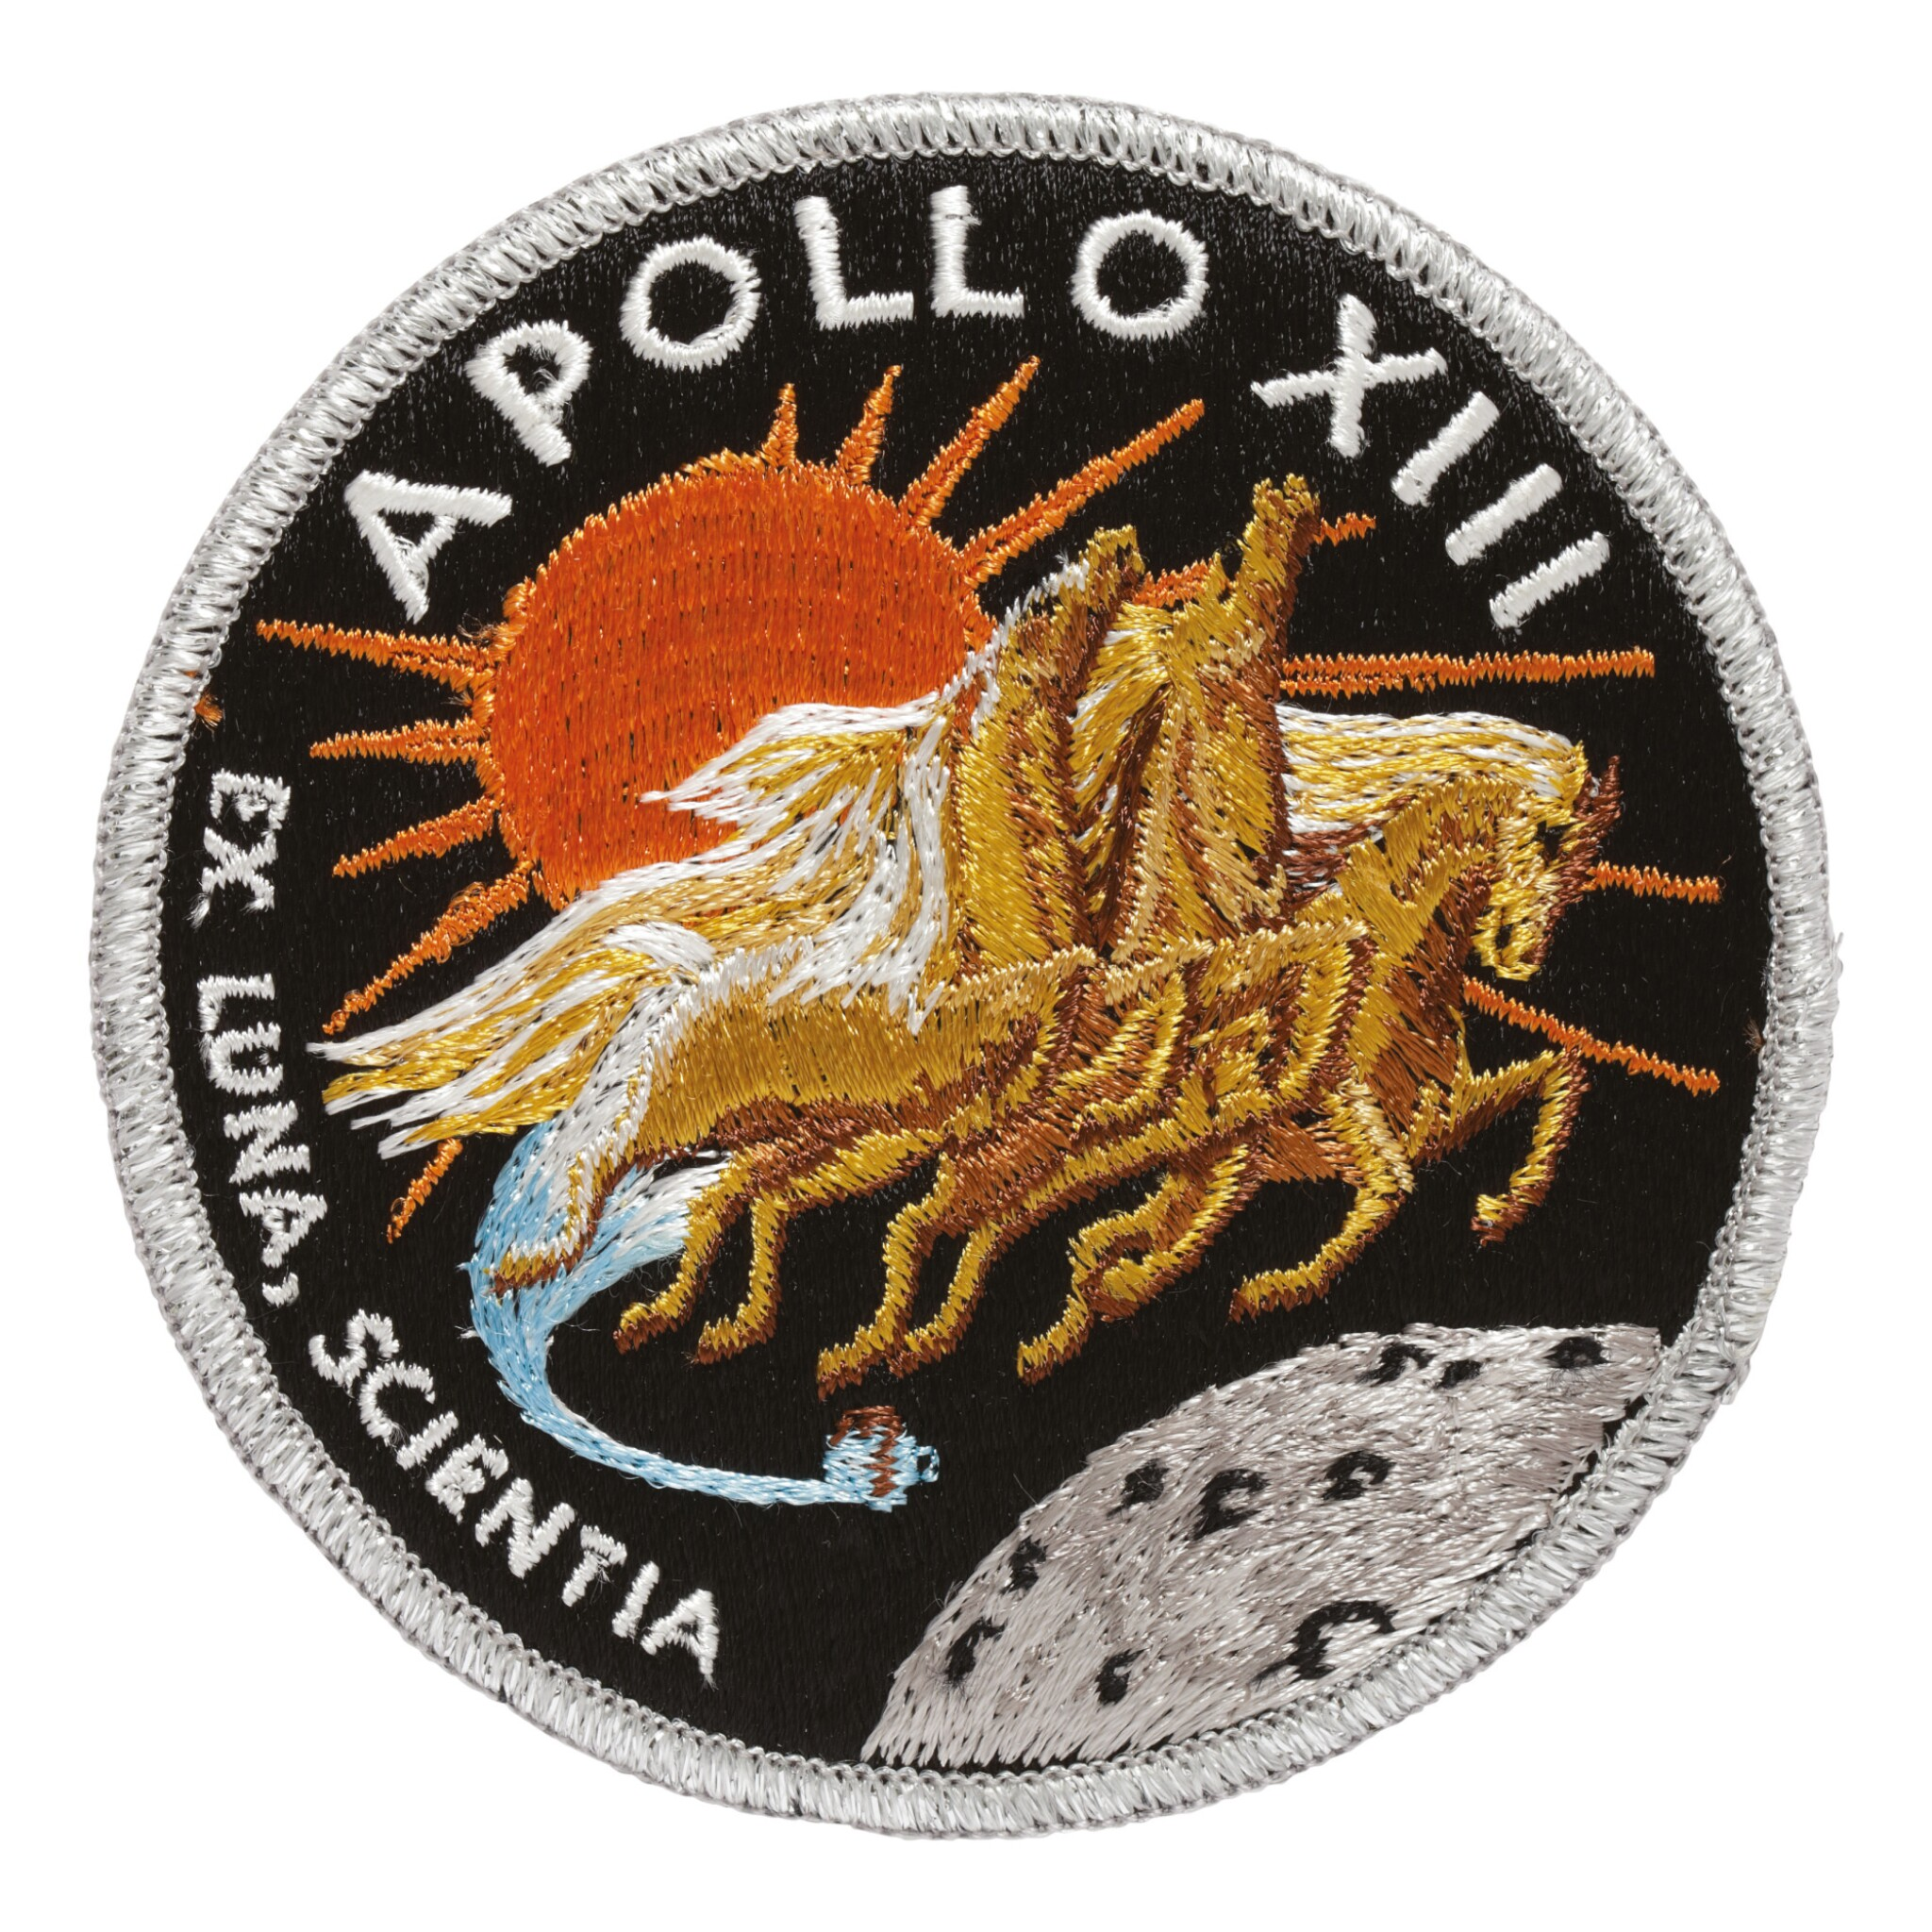 View full screen - View 1 of Lot 162. [APOLLO 13]. FLOWN ON APOLLO 13. AB EMBLEM MISSION PATCH, FROM THE COLLECTION OF JAMES LOVELL.